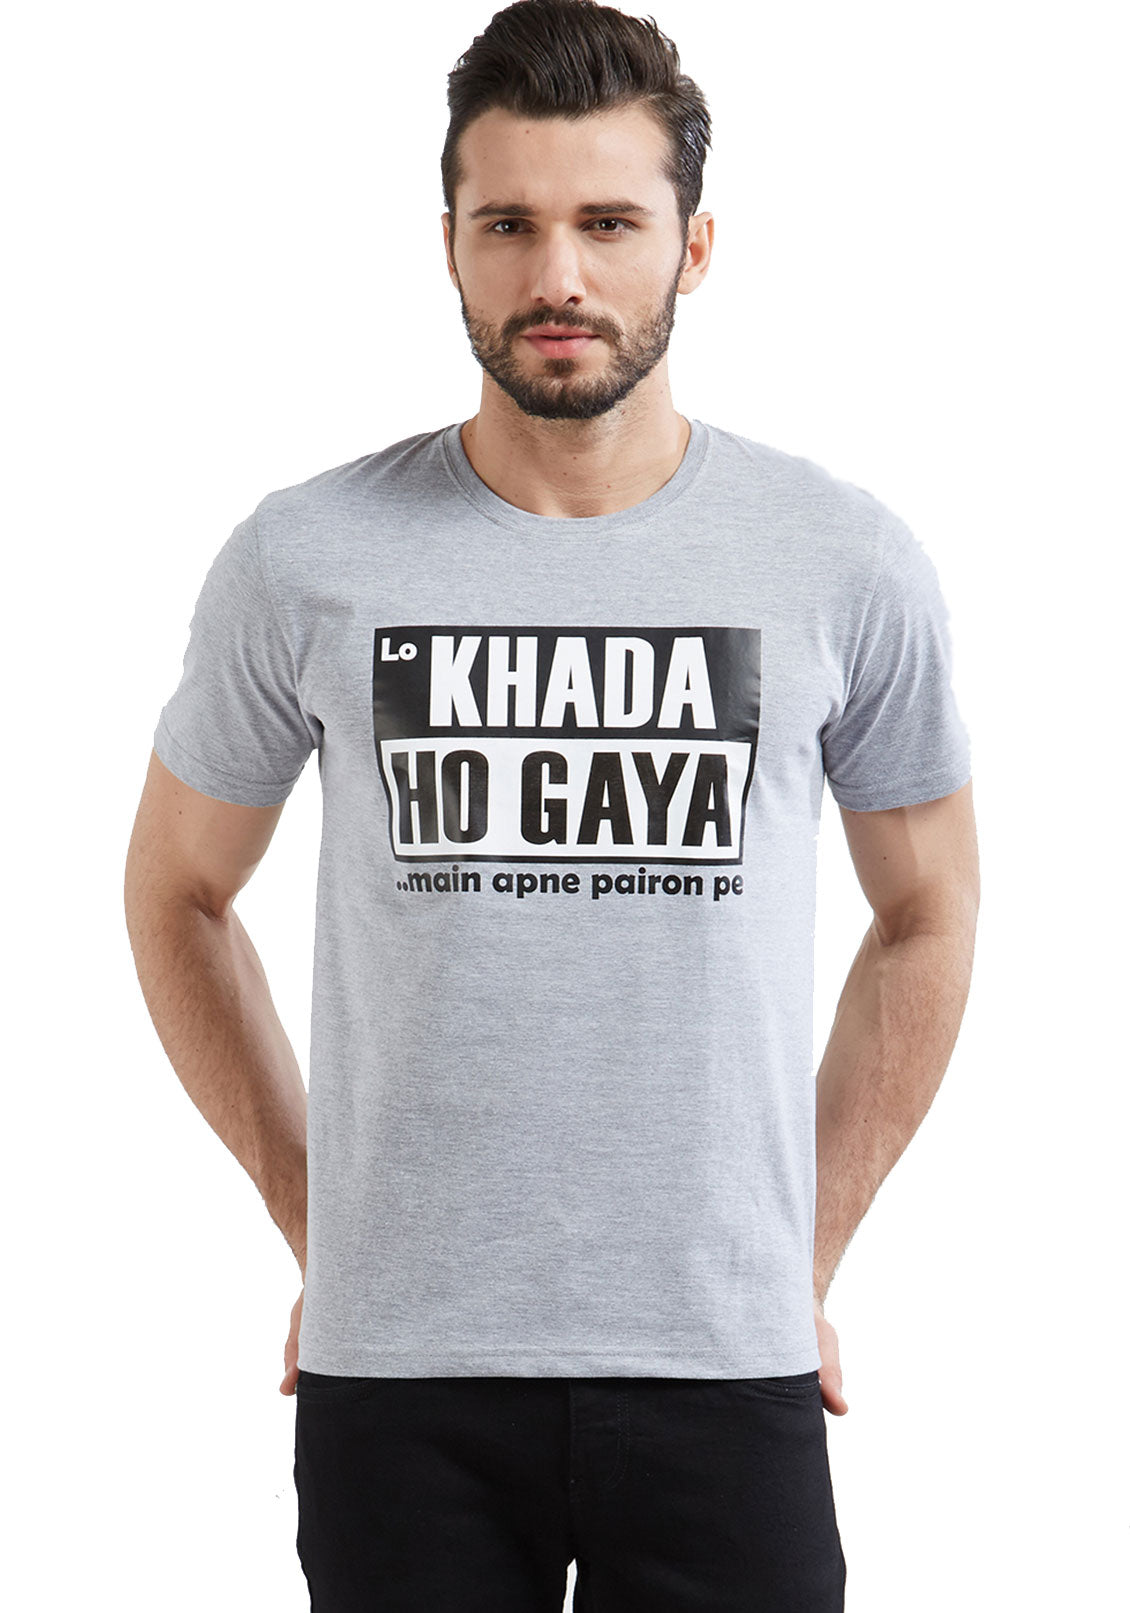 42ad4e5257bc Buy Graphic Tees   Printed T Shirts with funny quote Lo Khada Ho Gaya –  Wear Your Opinion - WYO.in